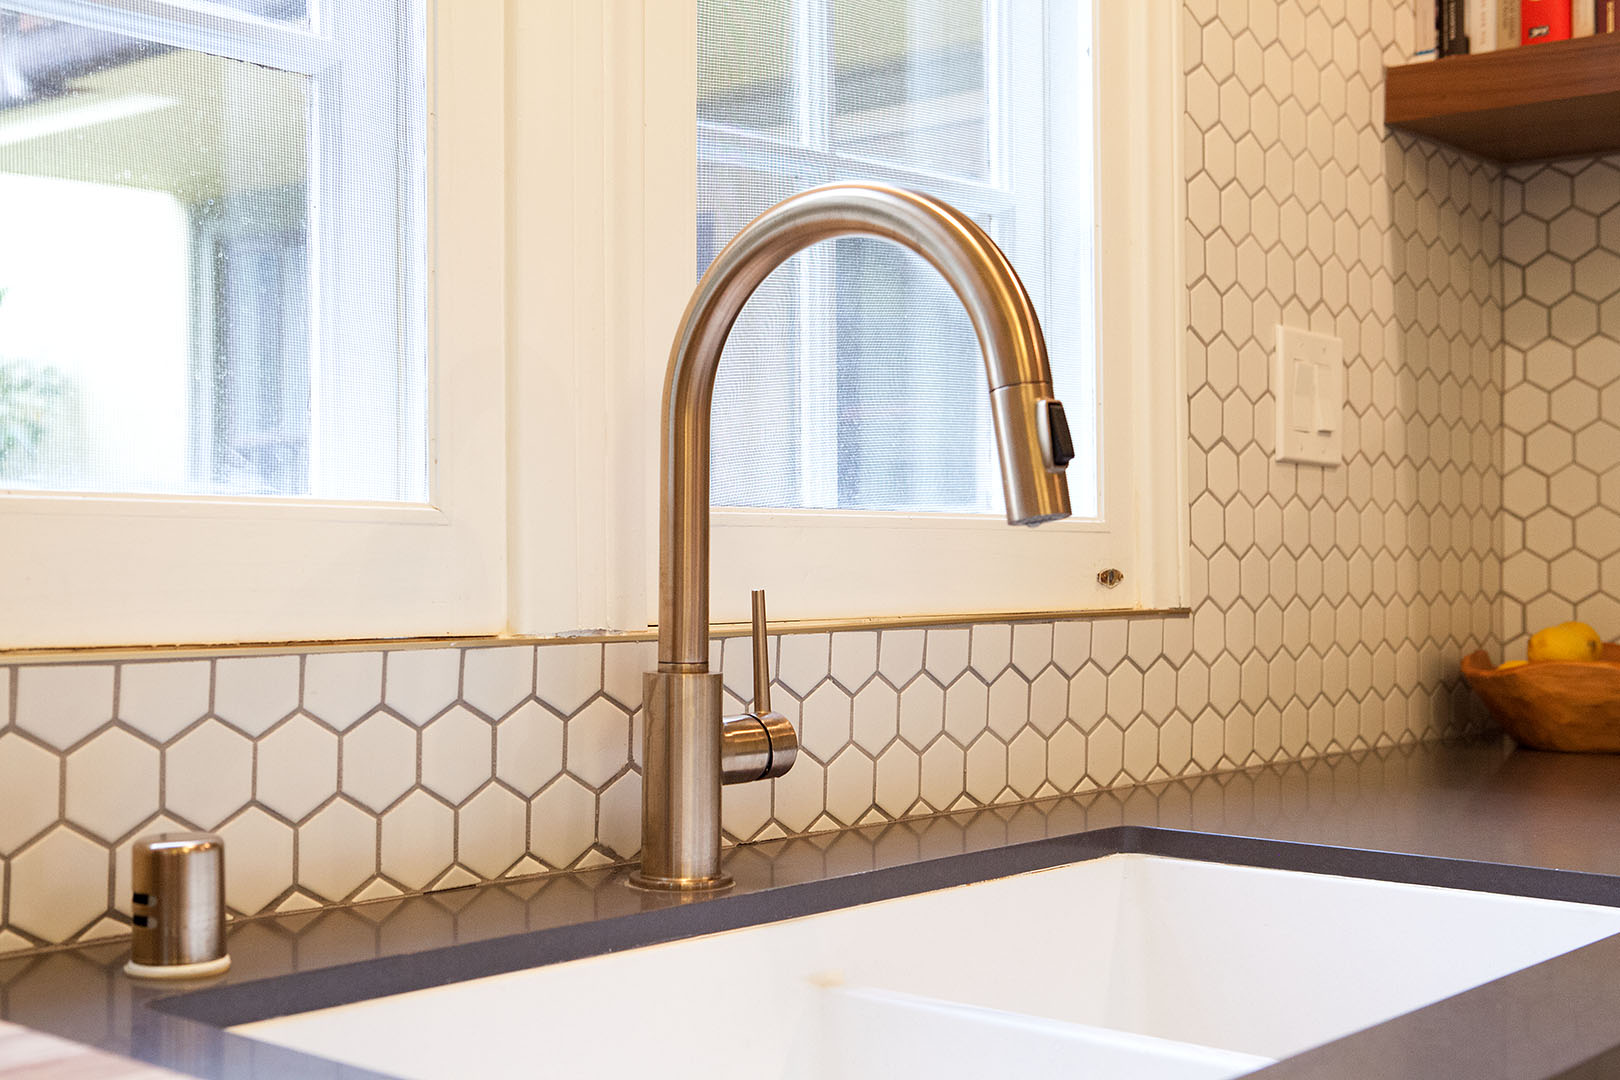 Kitchen faucet design in Oakland, CA